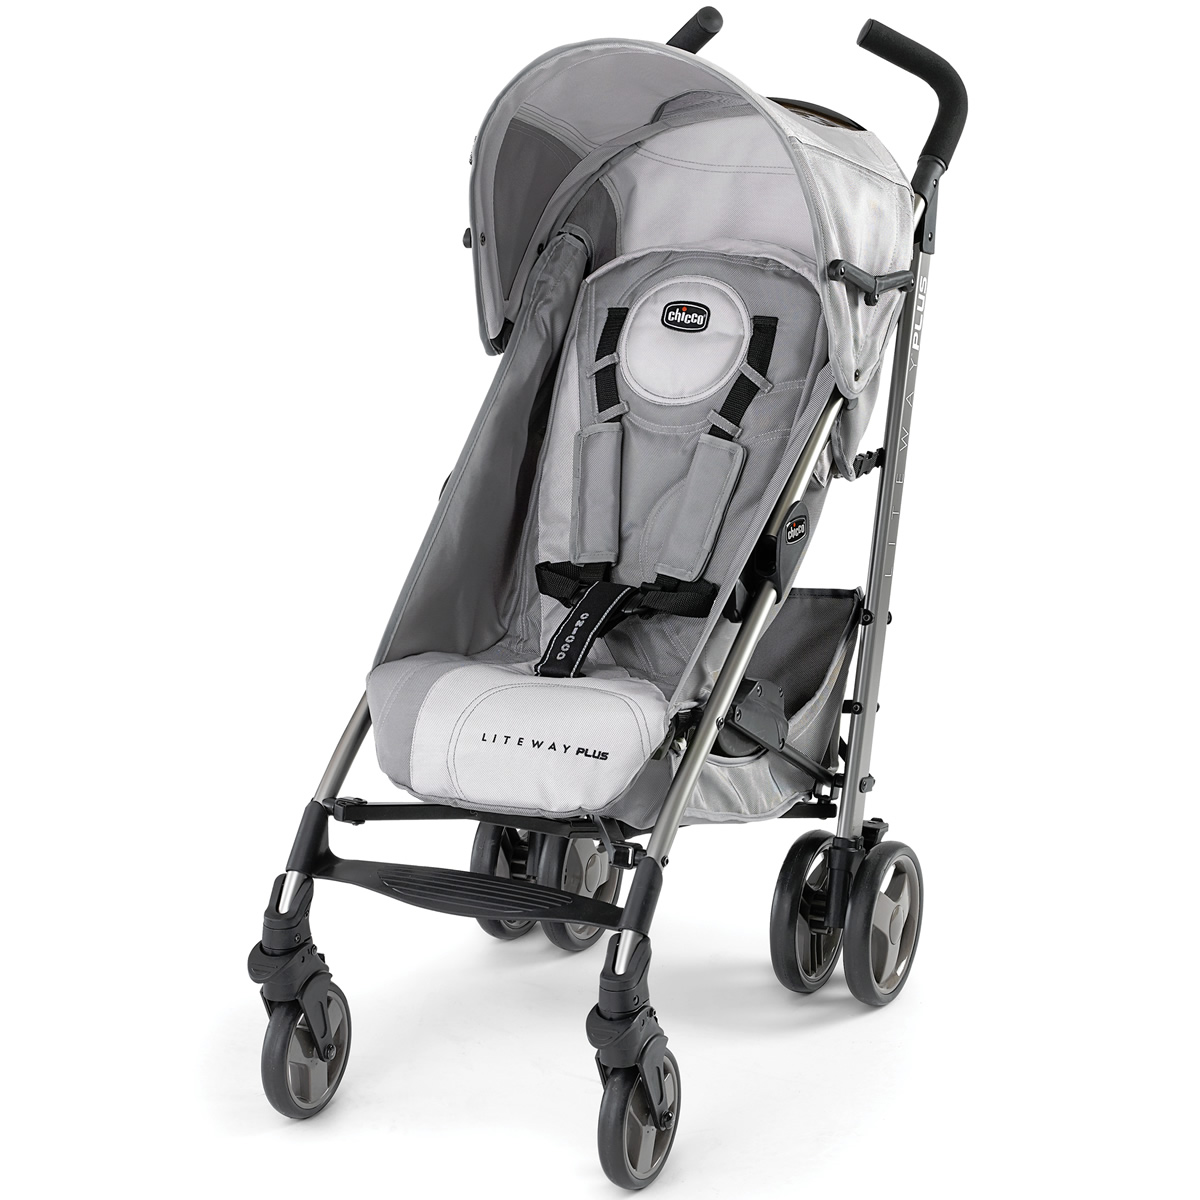 Chicco Stroller In 2 Chicco Liteway Plus Stroller Silver